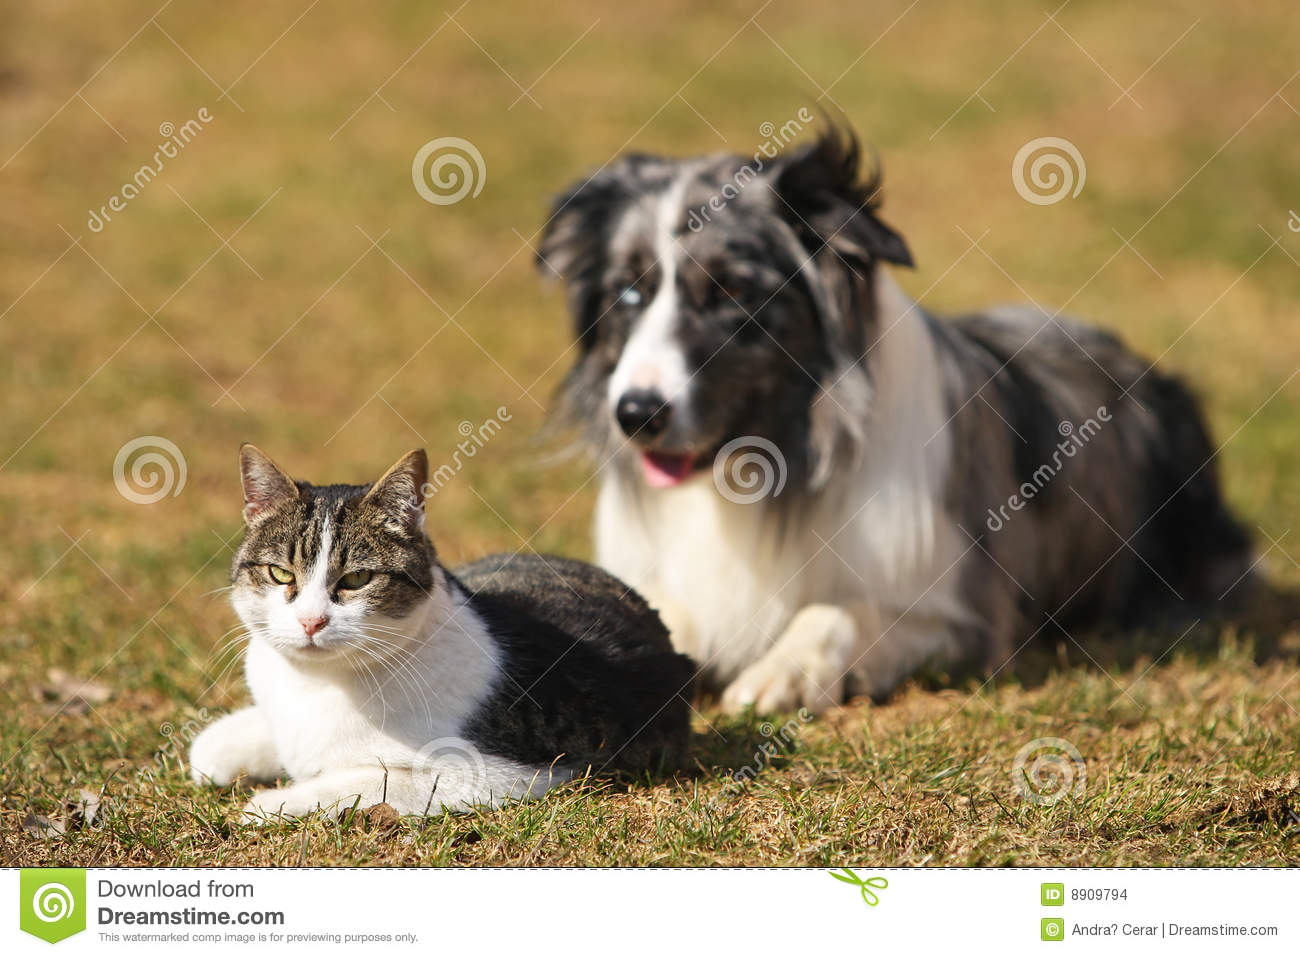 Border Collie Behind A Cat Stock Images - Image: 8909794